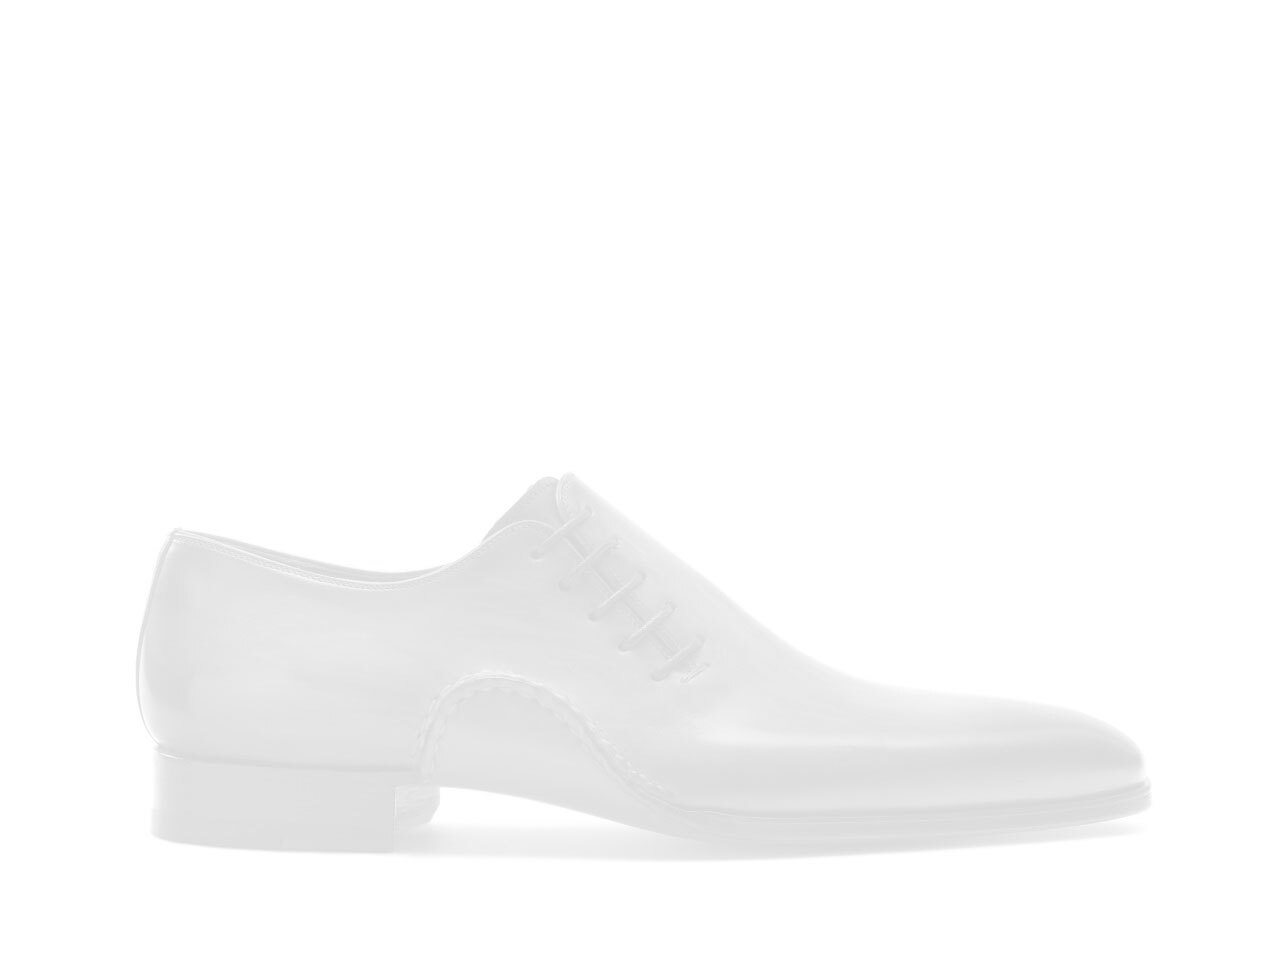 Sole of the Magnanni Gasol Grey Suede Men's Sneakers